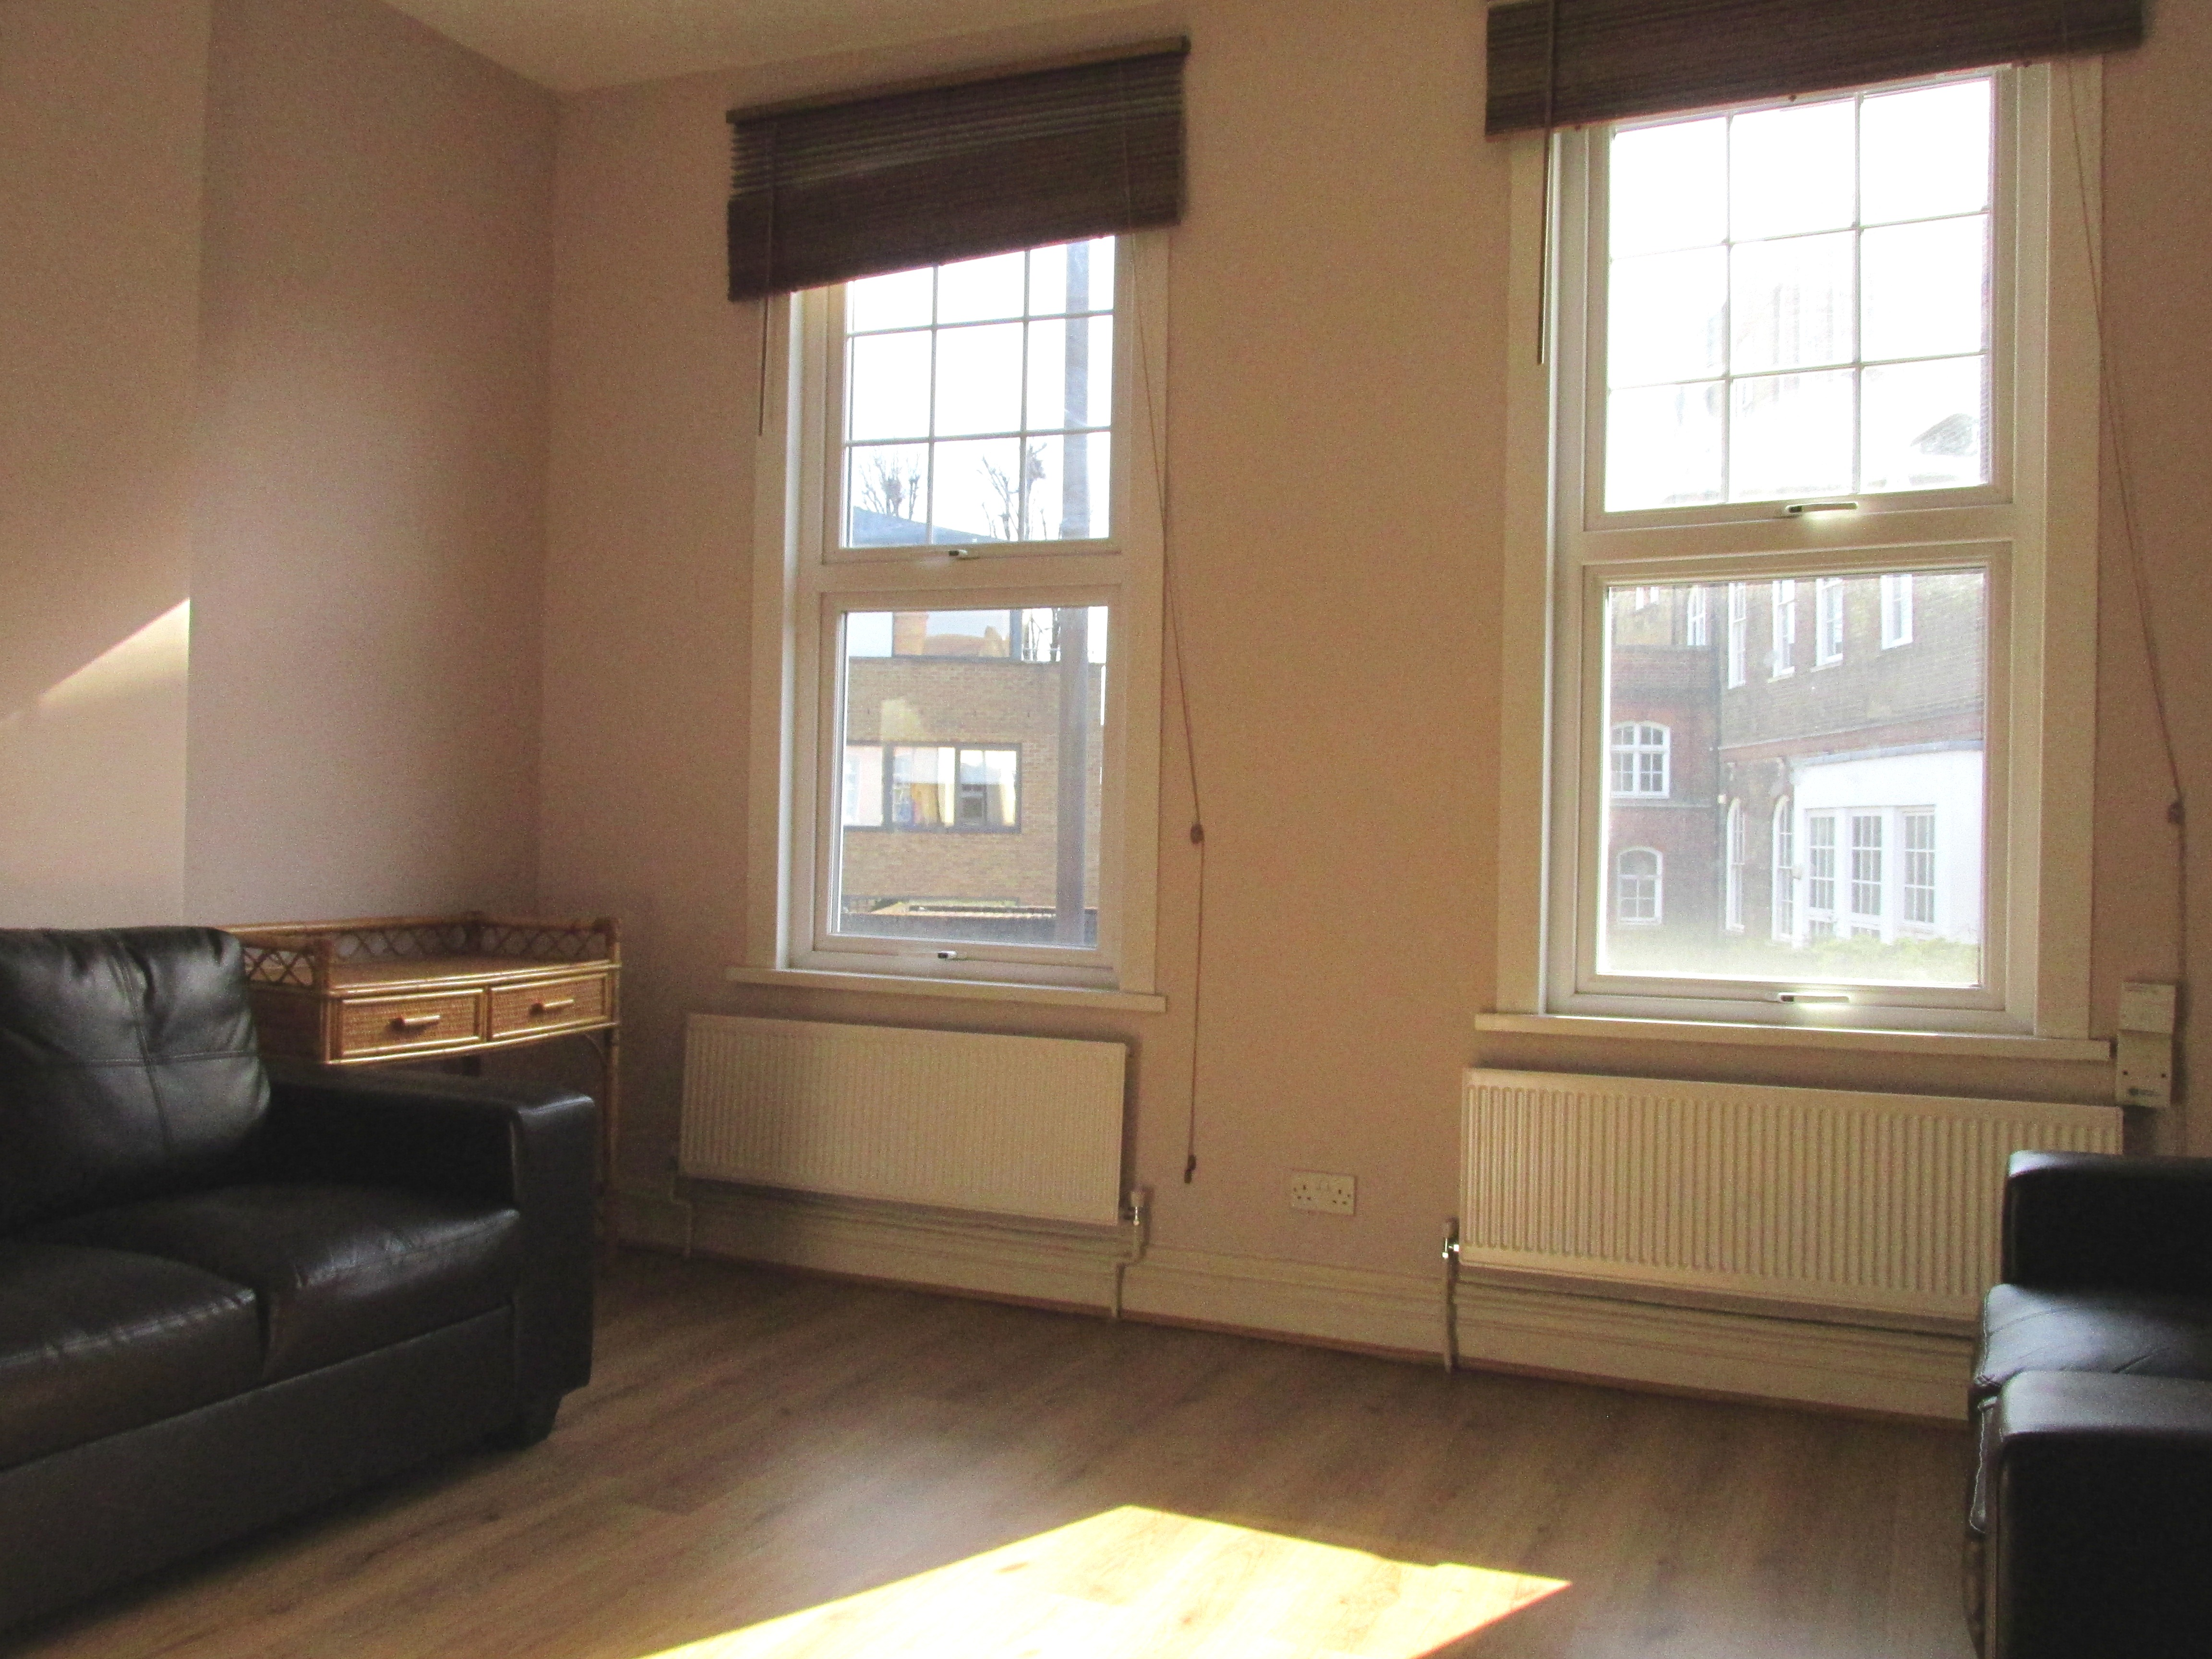 Next Location is pleased to present this stunning one bedroom maisonette apartment in Stoke Newington N16.